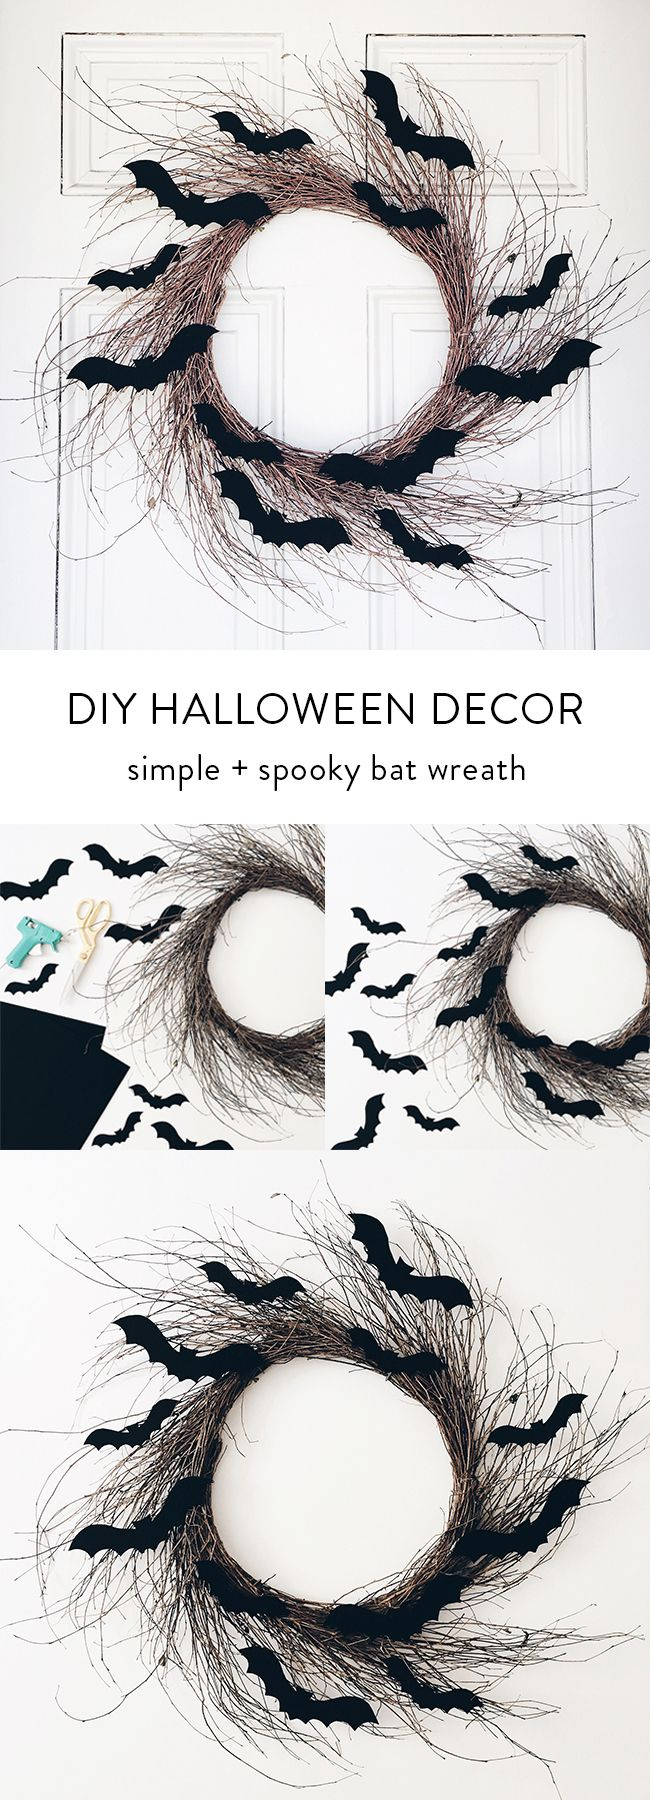 diy halloween decor: rustic bat wreath